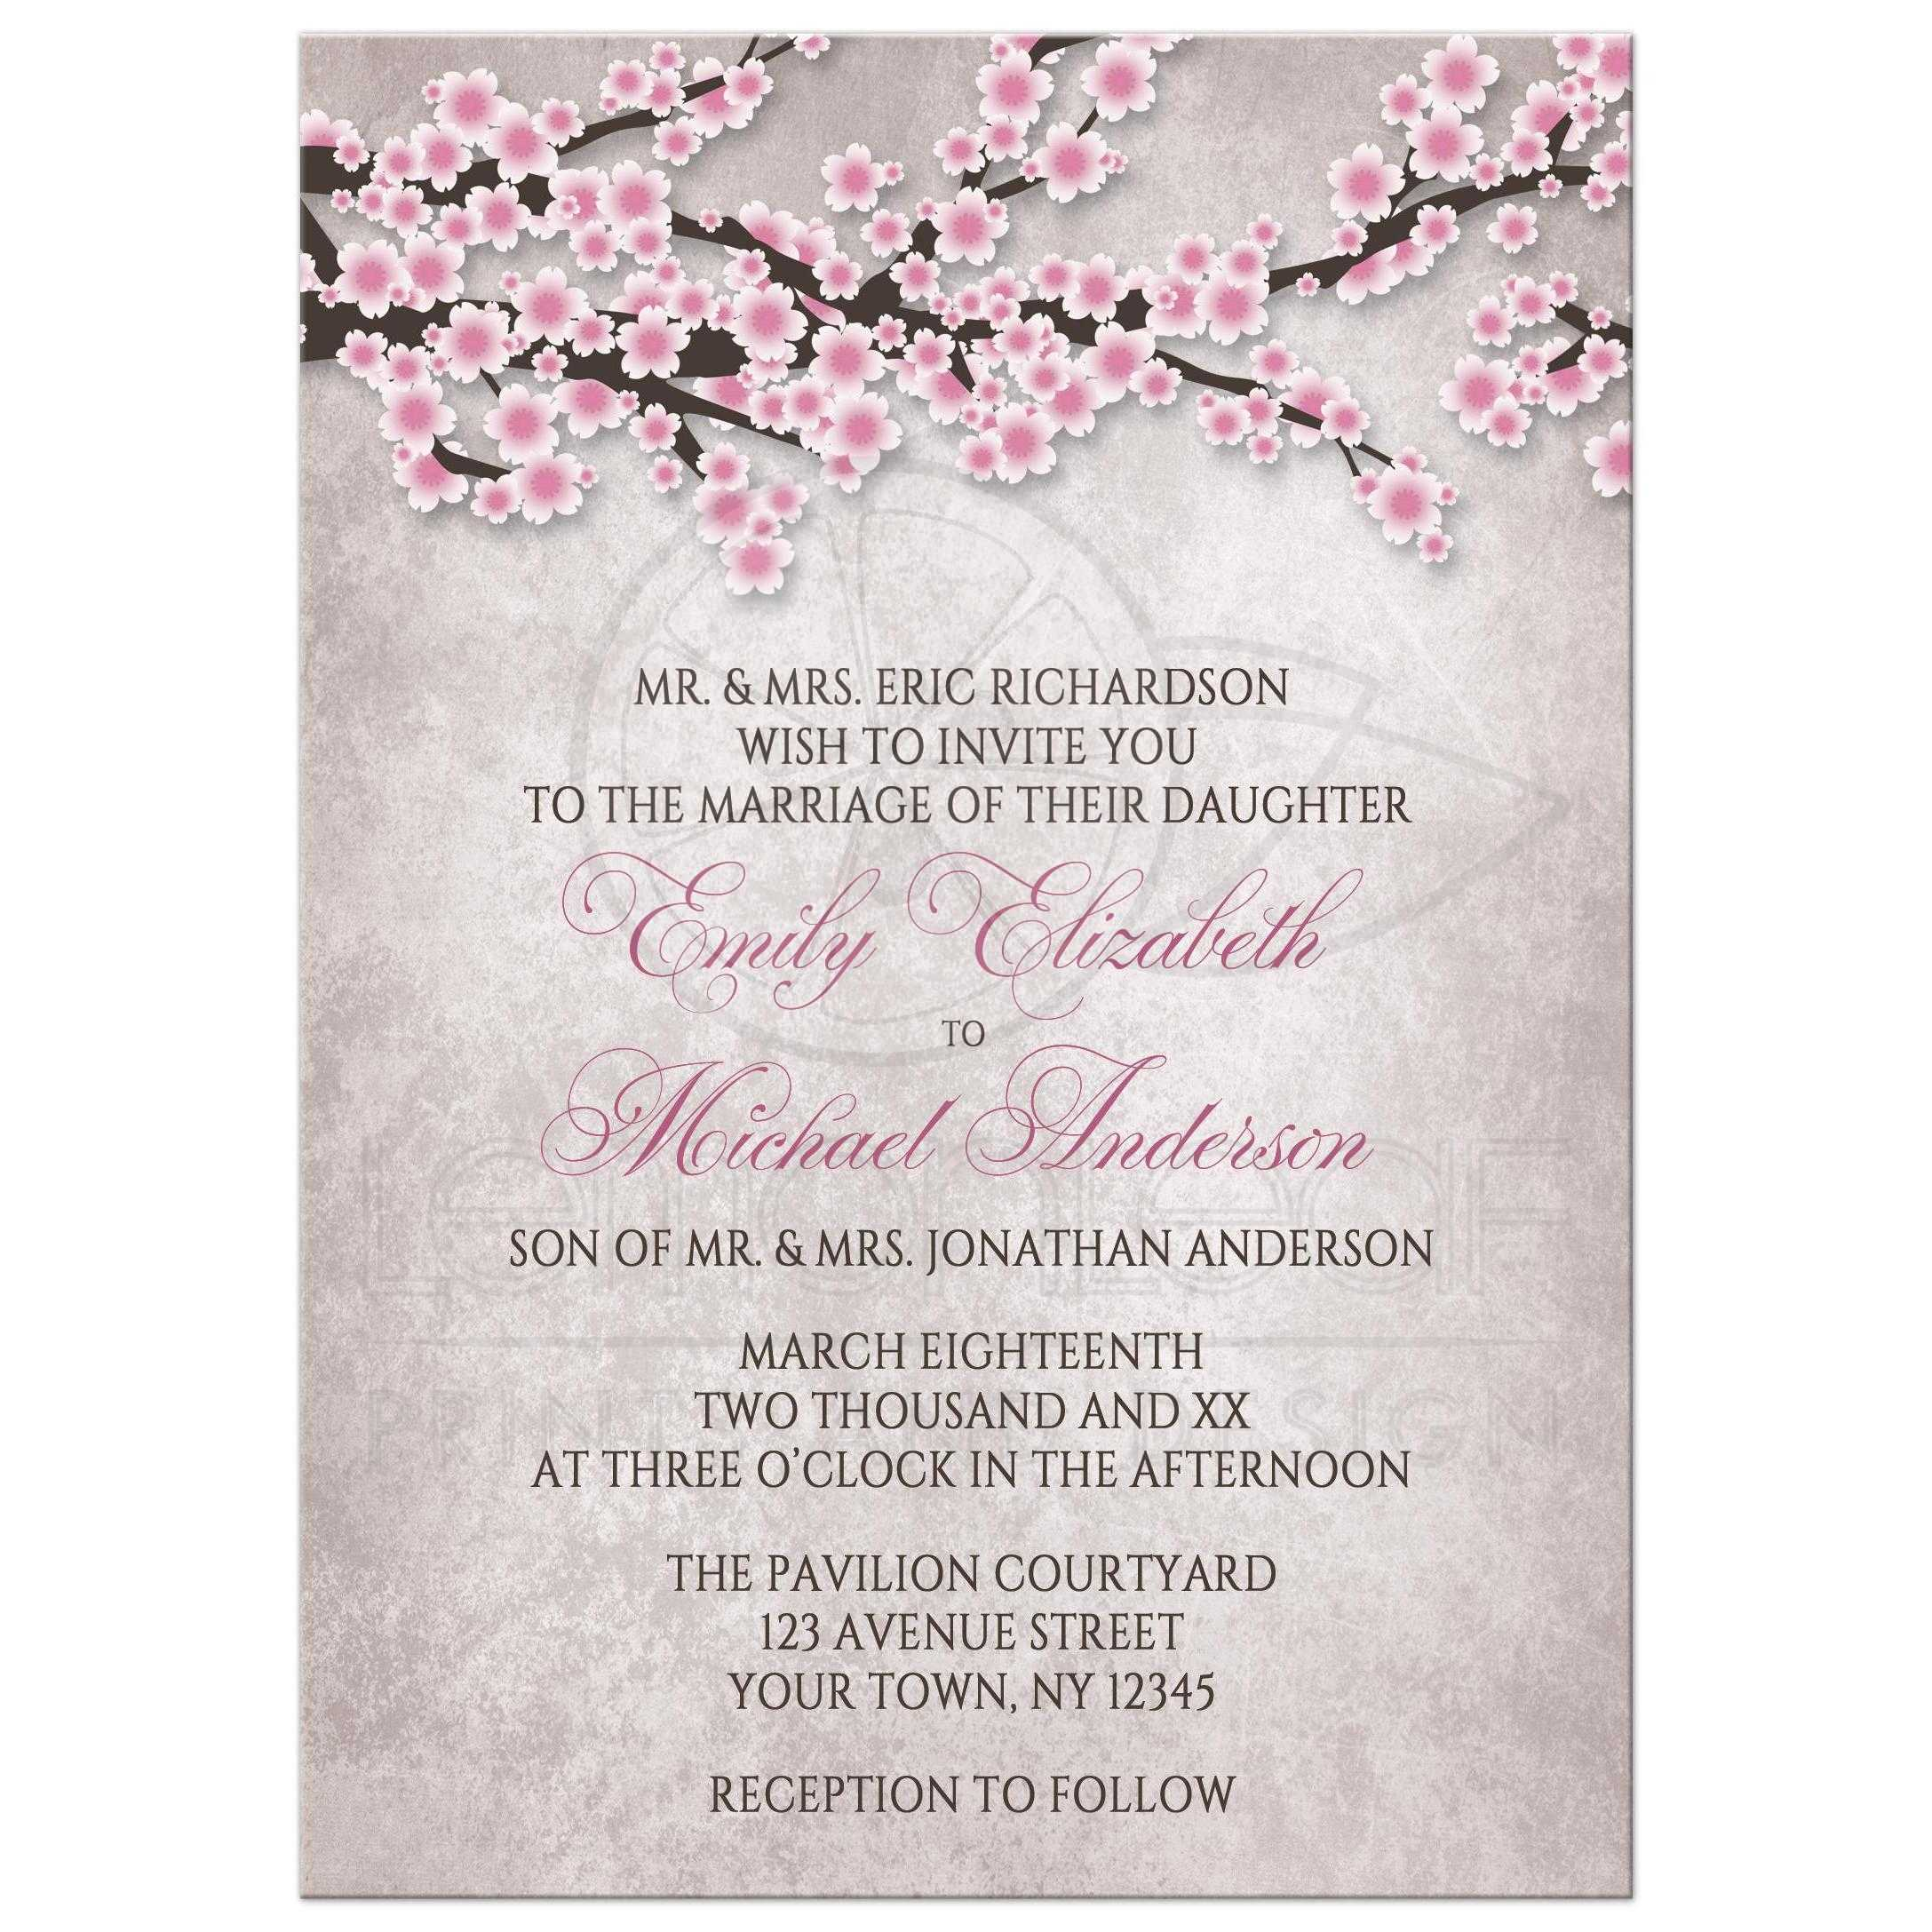 invitations - rustic pink cherry blossom, Wedding invitations